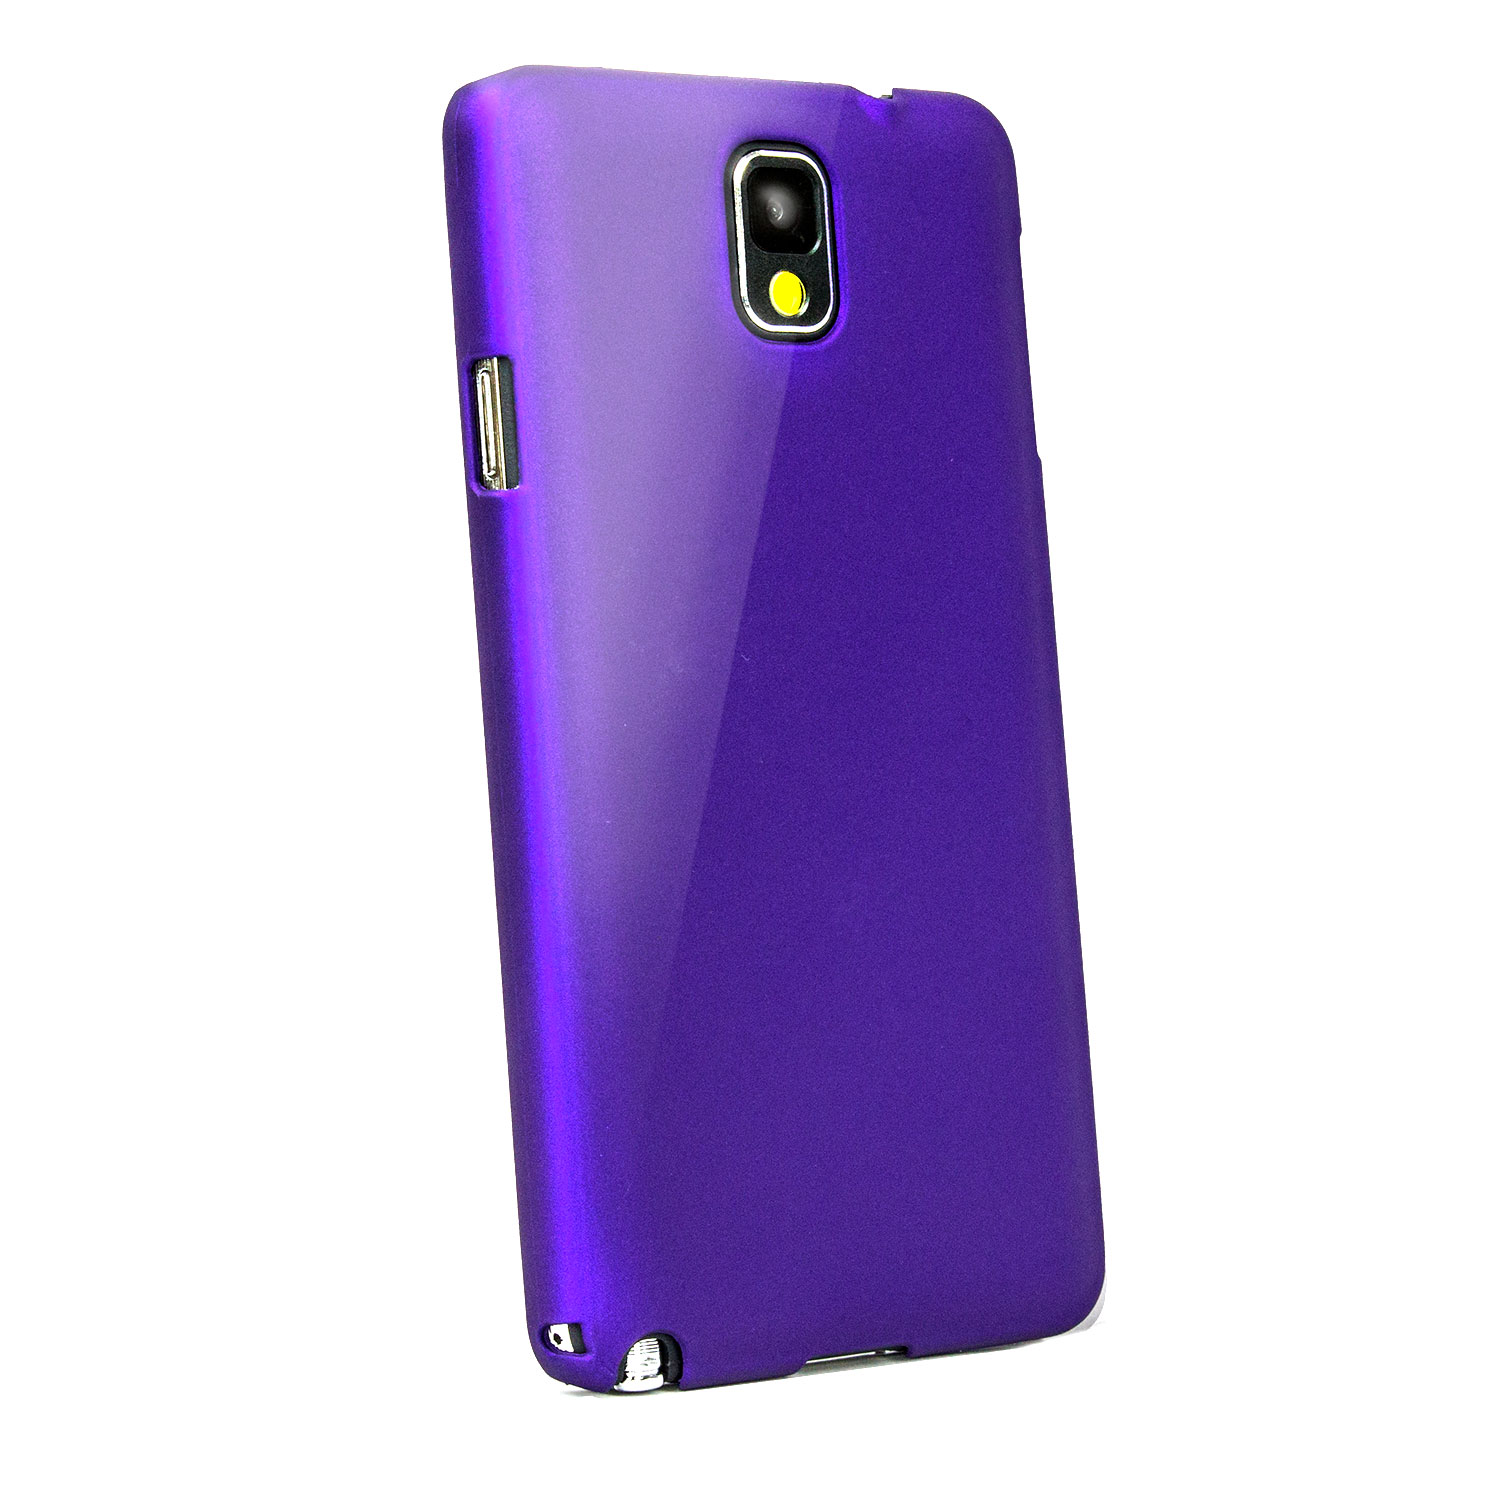 ToughGuard Shell for Samsung Galaxy Note 3 - Purple